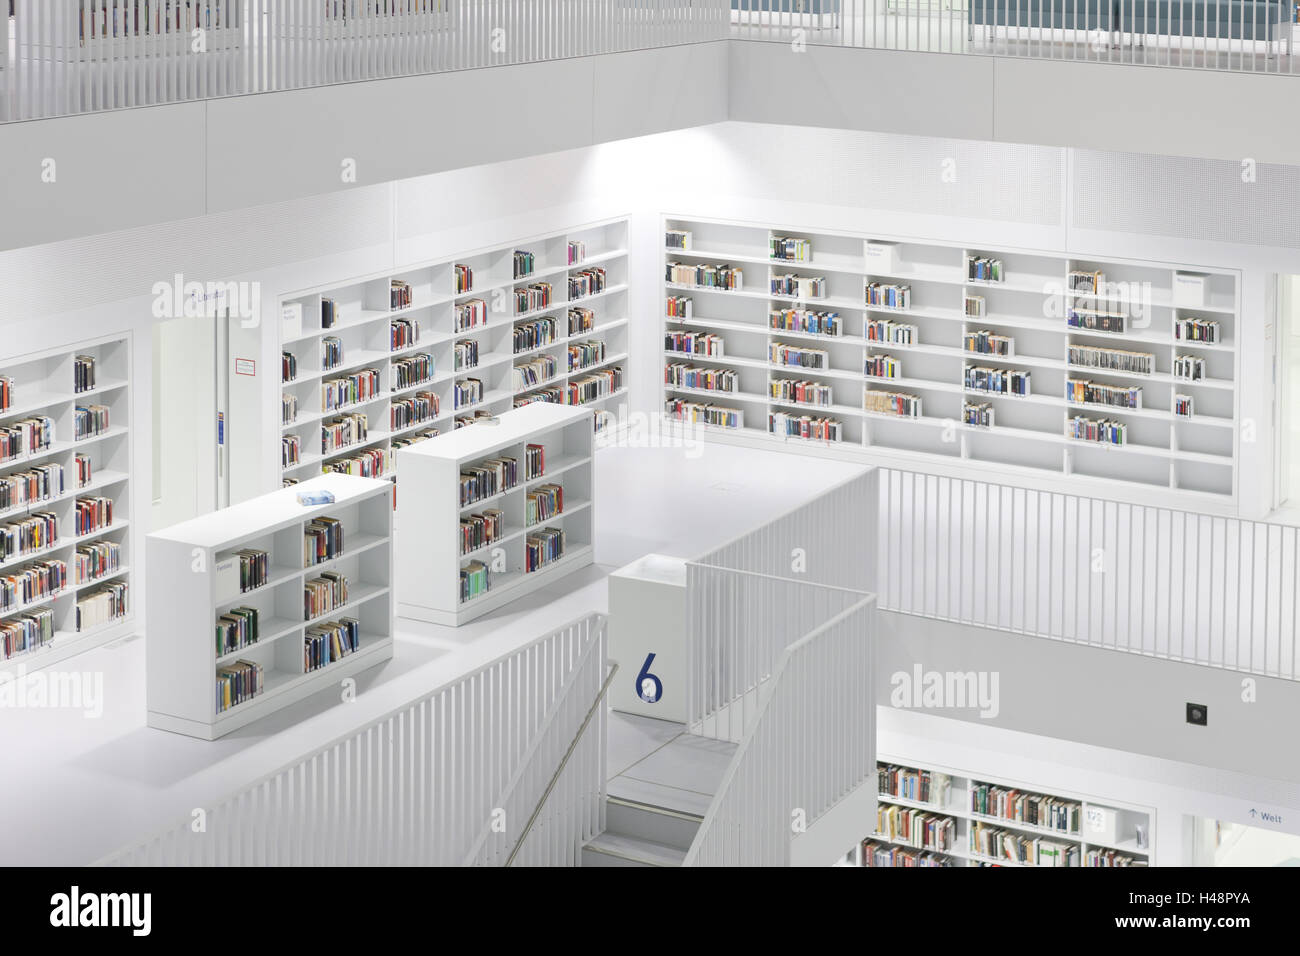 Germany Stuttgart New City Library Indoors Central White Stairs Double Facade Light Concept Interior View Atrium Stairwell